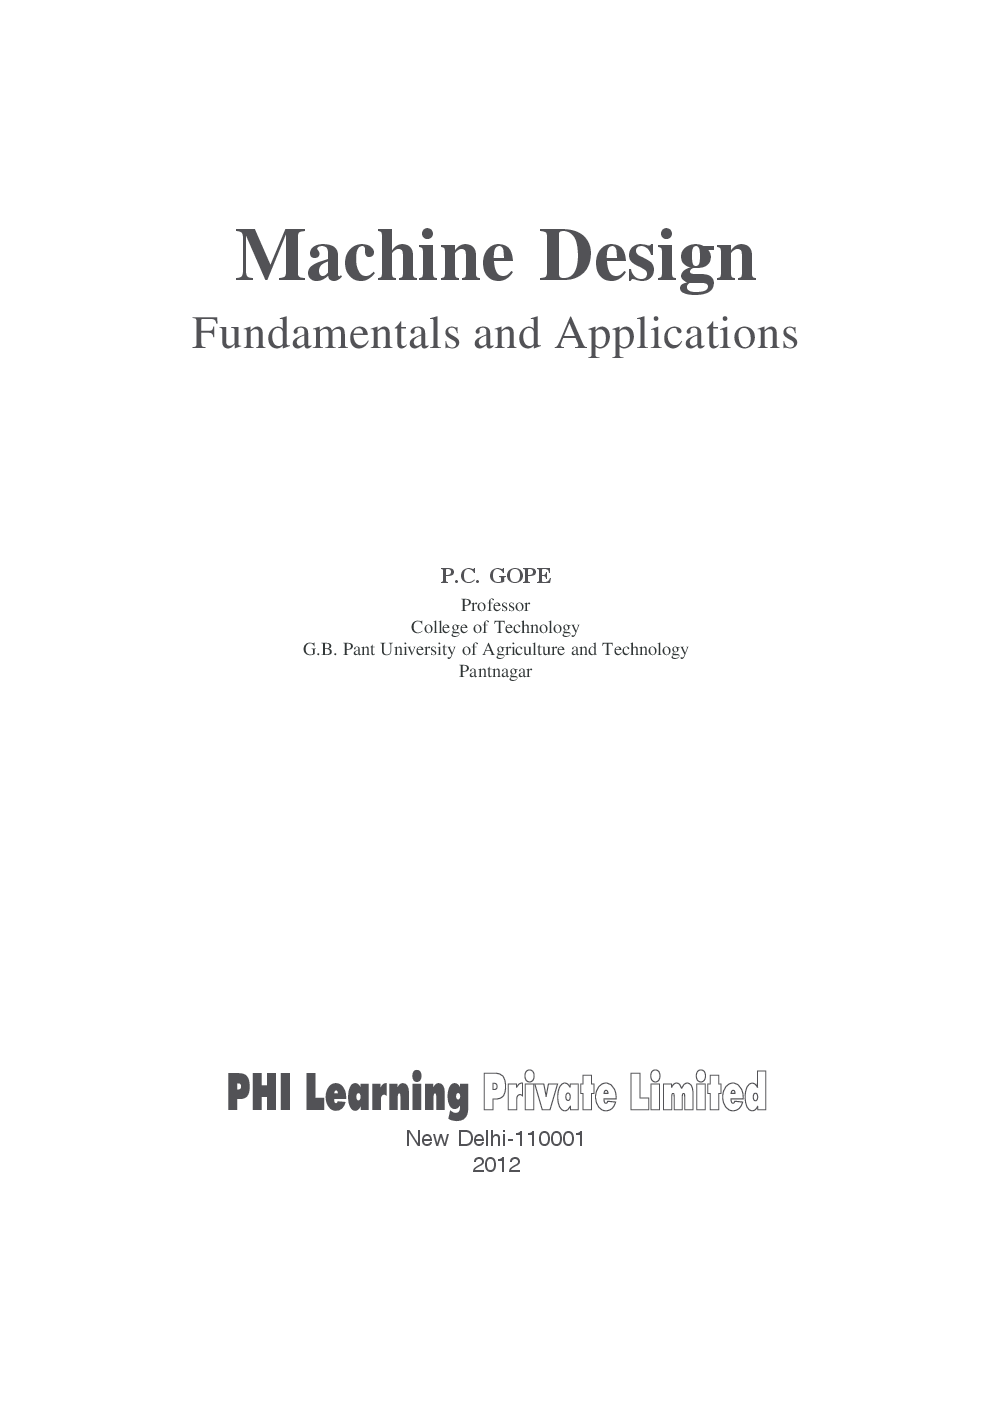 Fundamentals of machine design P orlov Mir